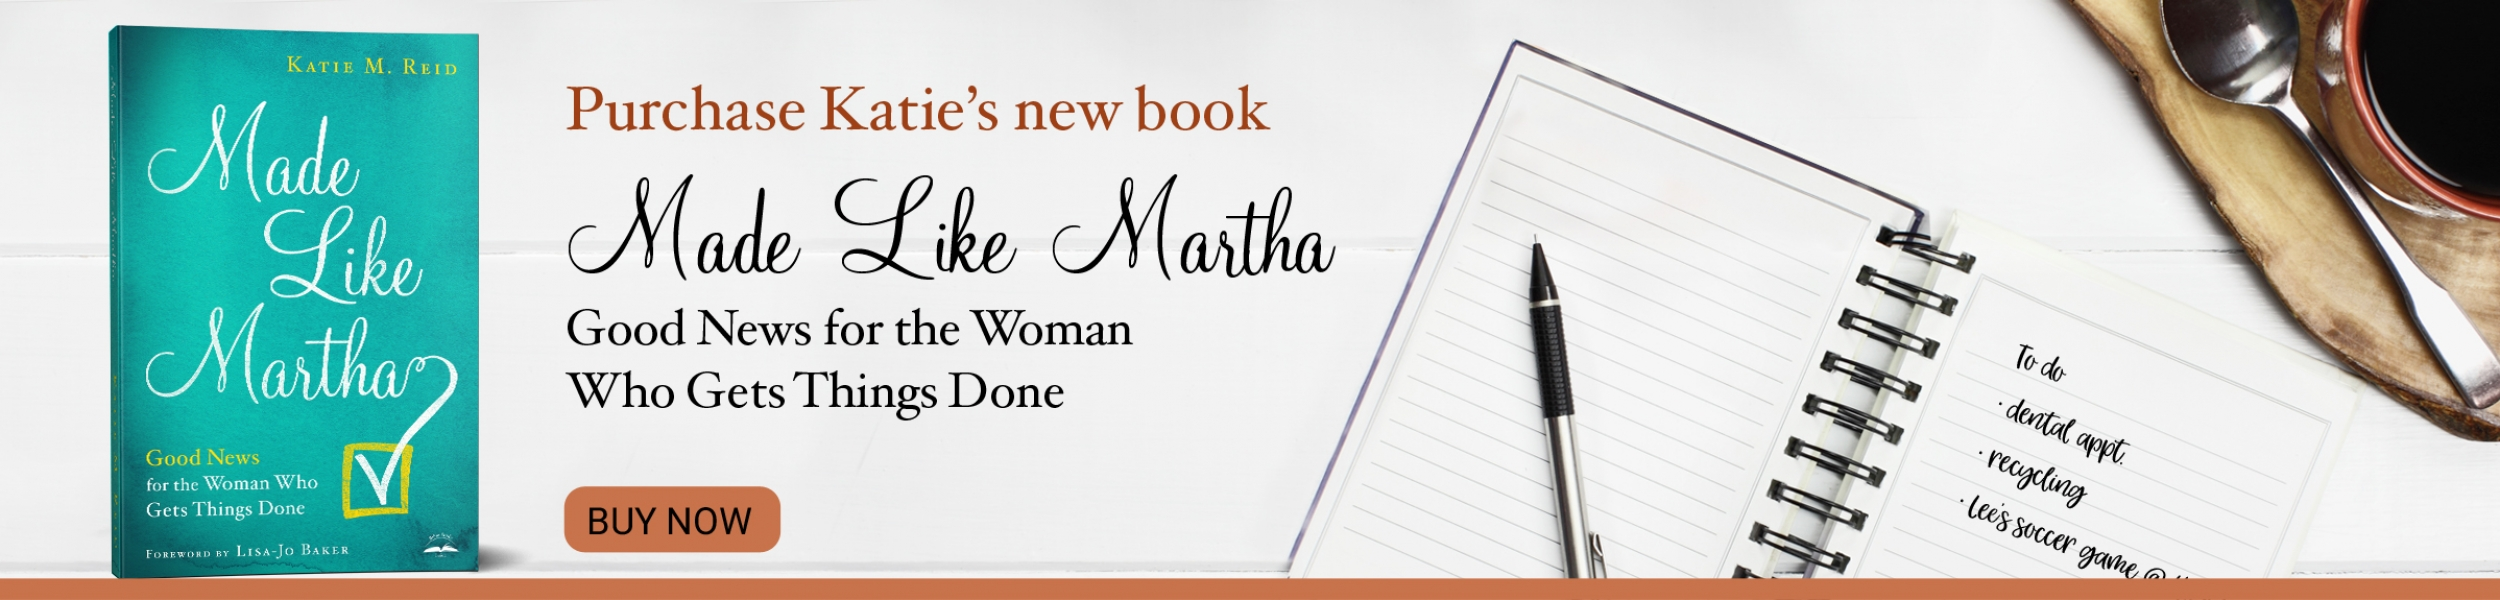 Katie Reid - Made Like Martha Book